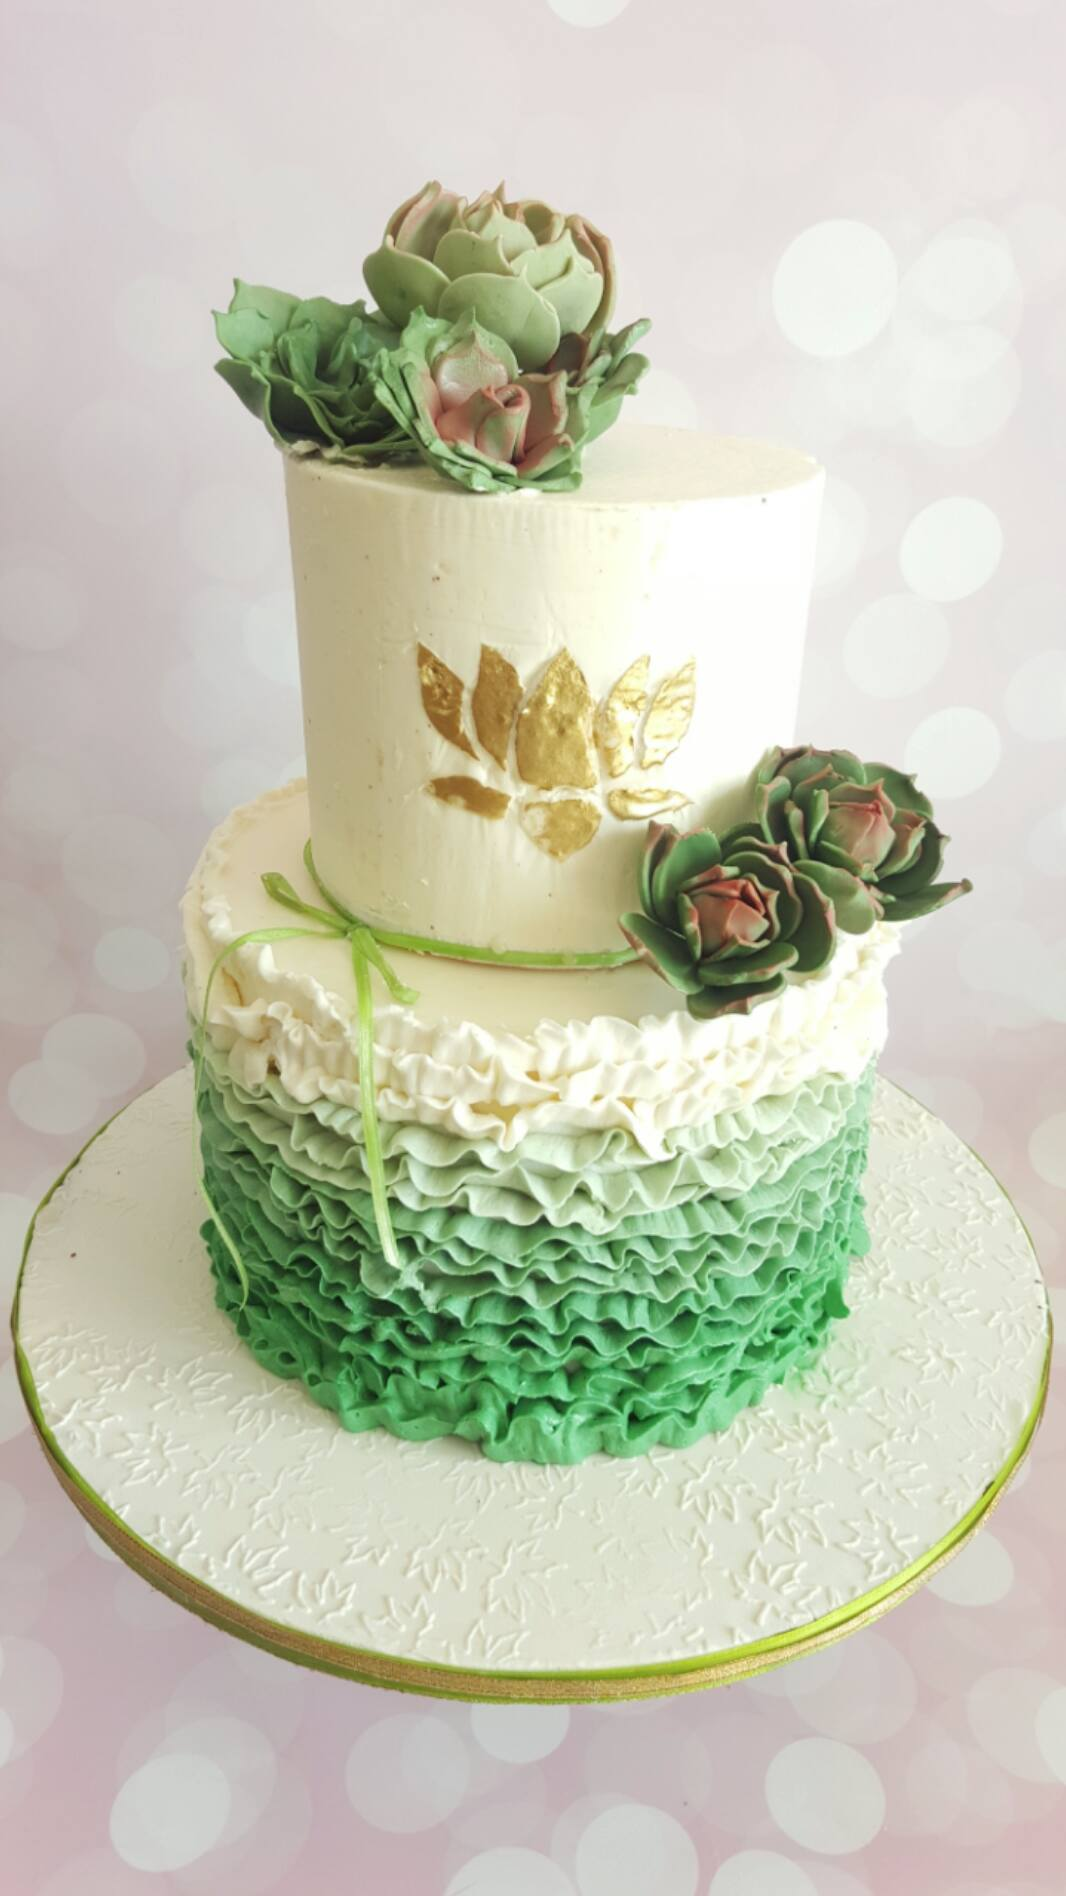 Green and white ombre cake with succulents